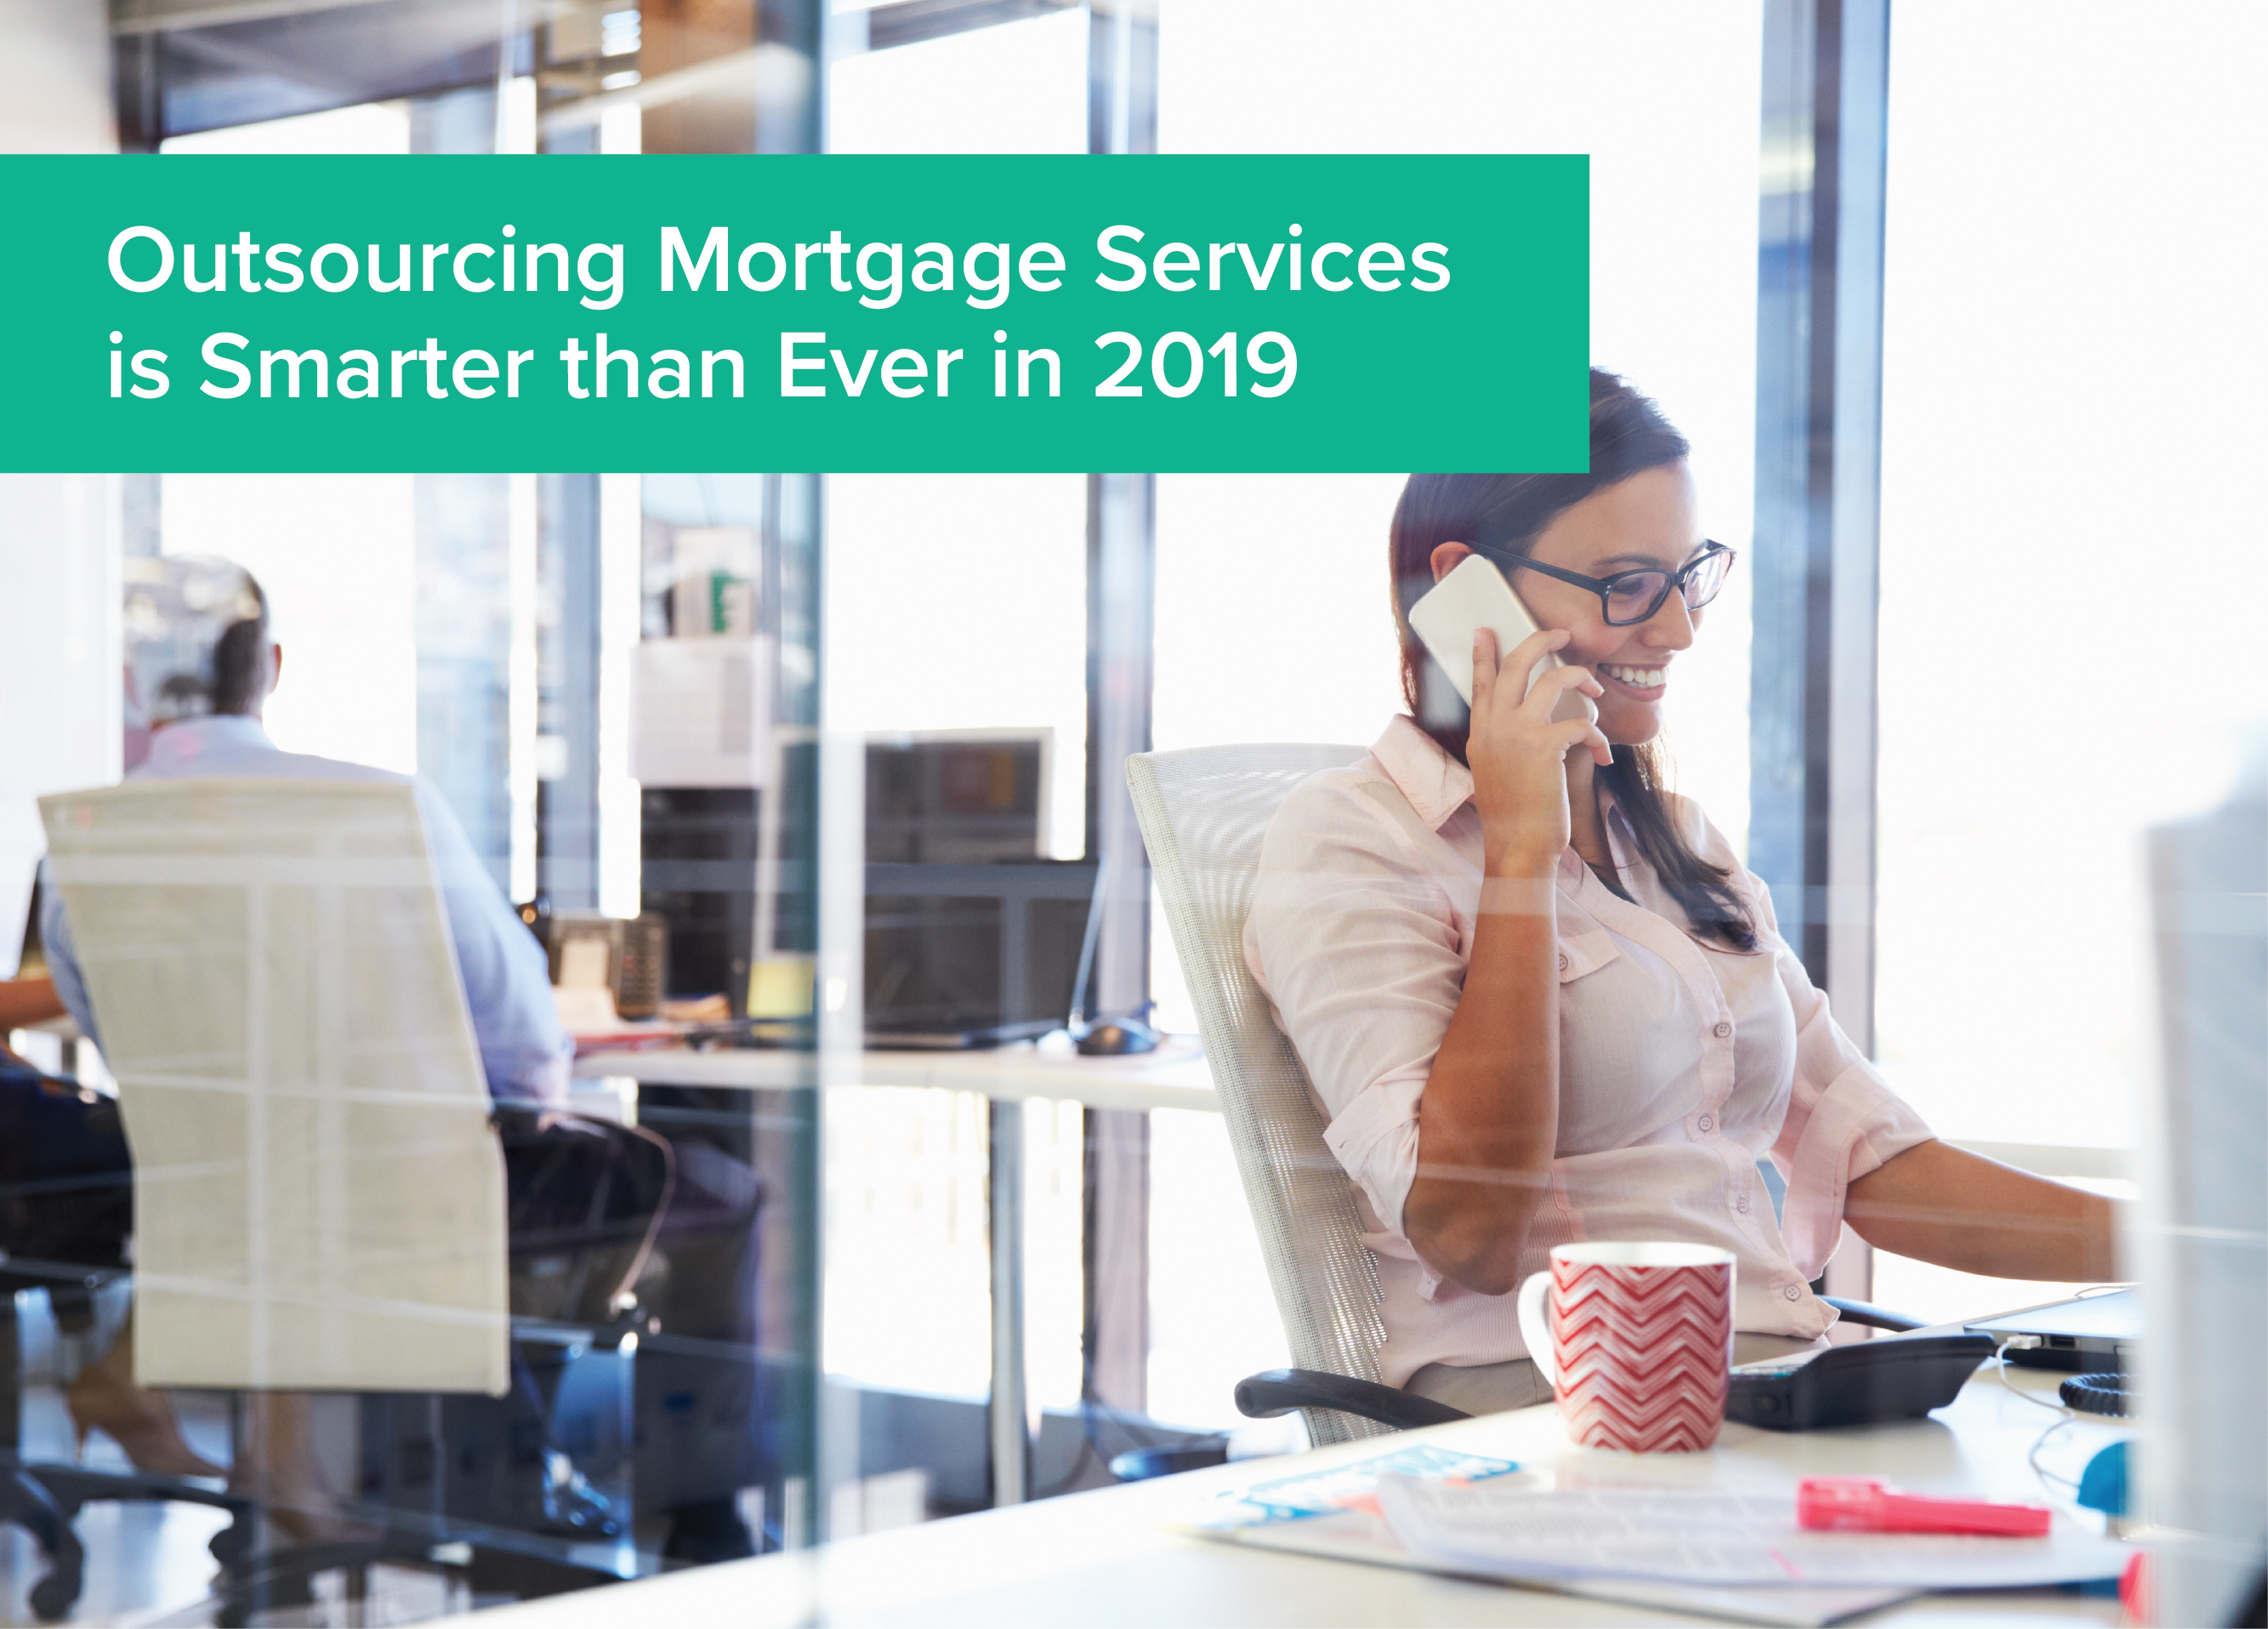 Outsourcing Mortgage services is smarter than ever in 2019